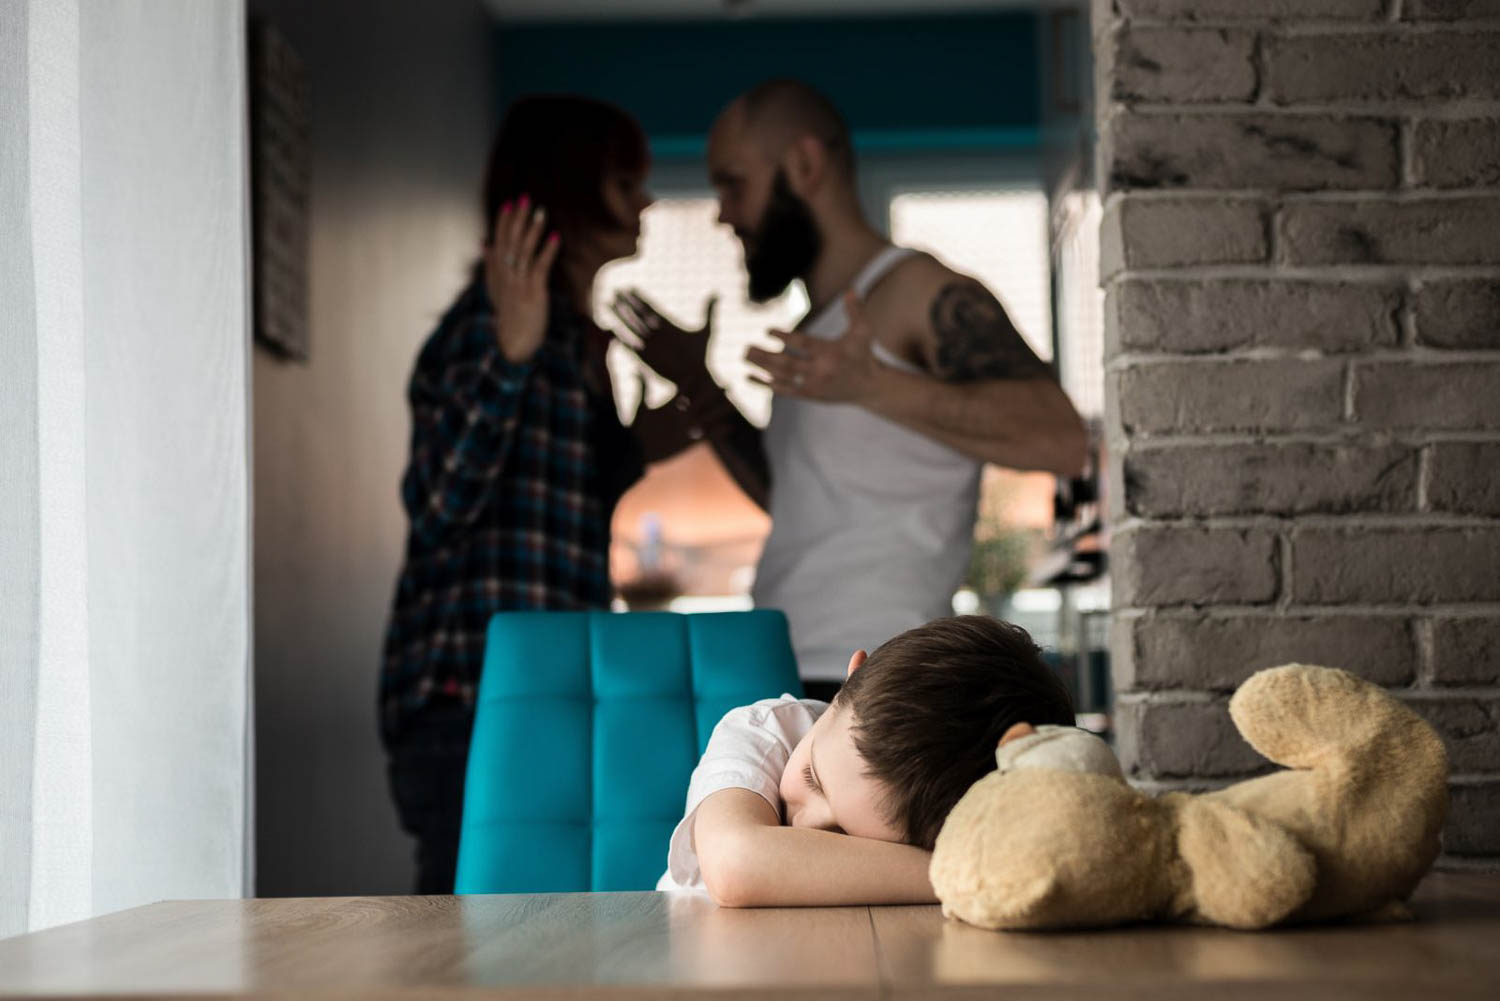 in the image, a man and woman are fighting in a hallway while a child is sitting at a dining room table with his head on his arms on the table with his teddy bear. The image is meant to depict a domestic violence situation in Fort Lauderdale, South Florida